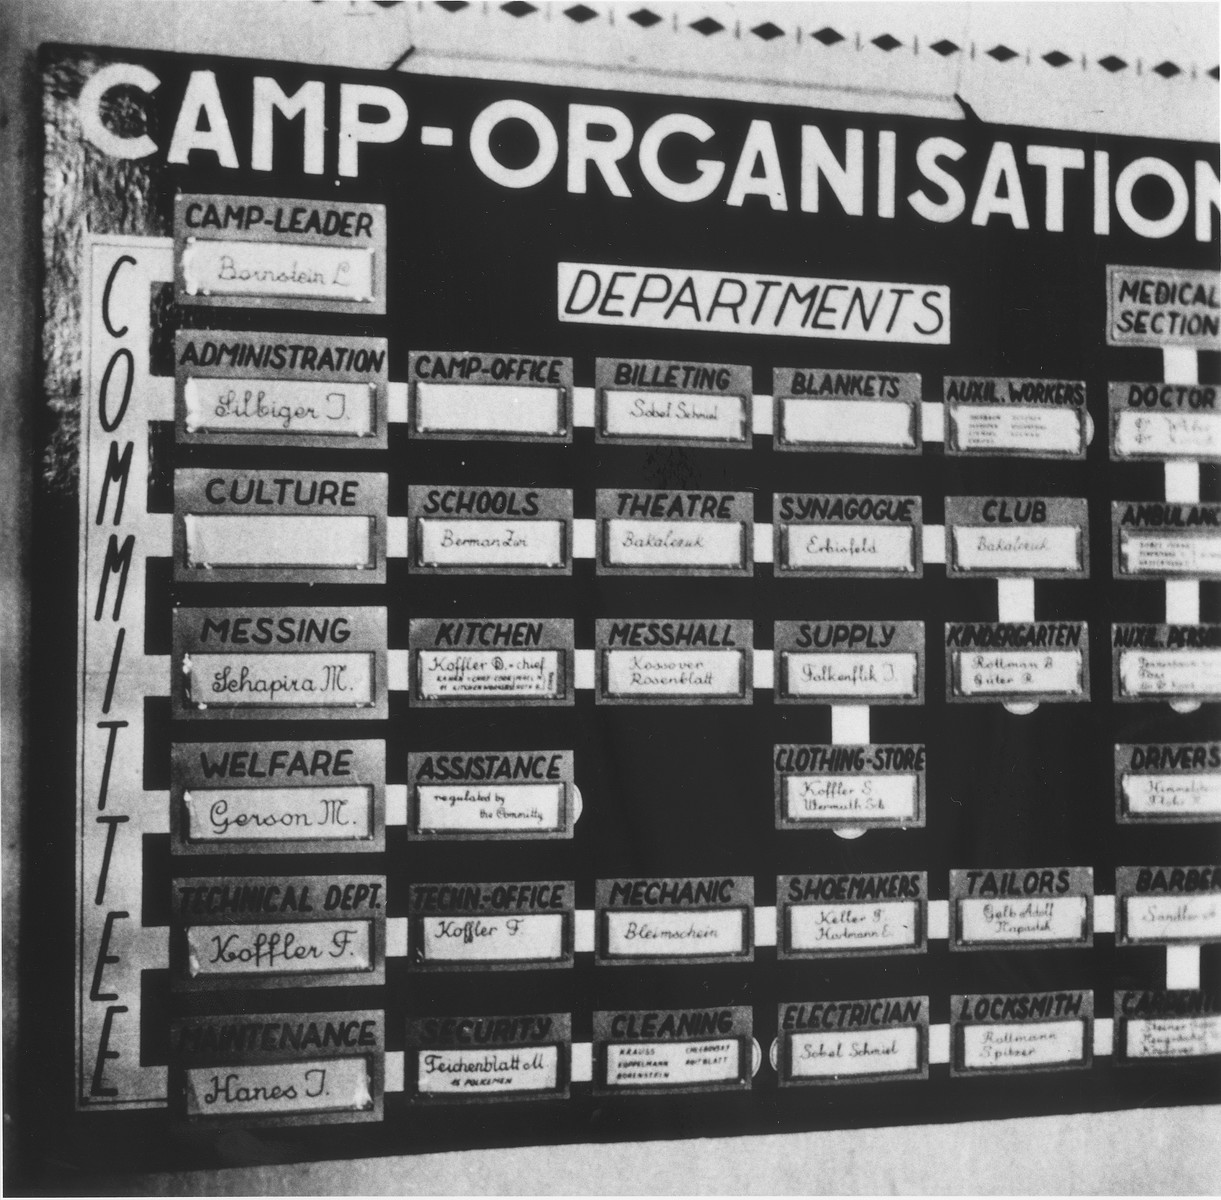 Organizational chart listing the departments and office holders of the Enns displaced persons camp.